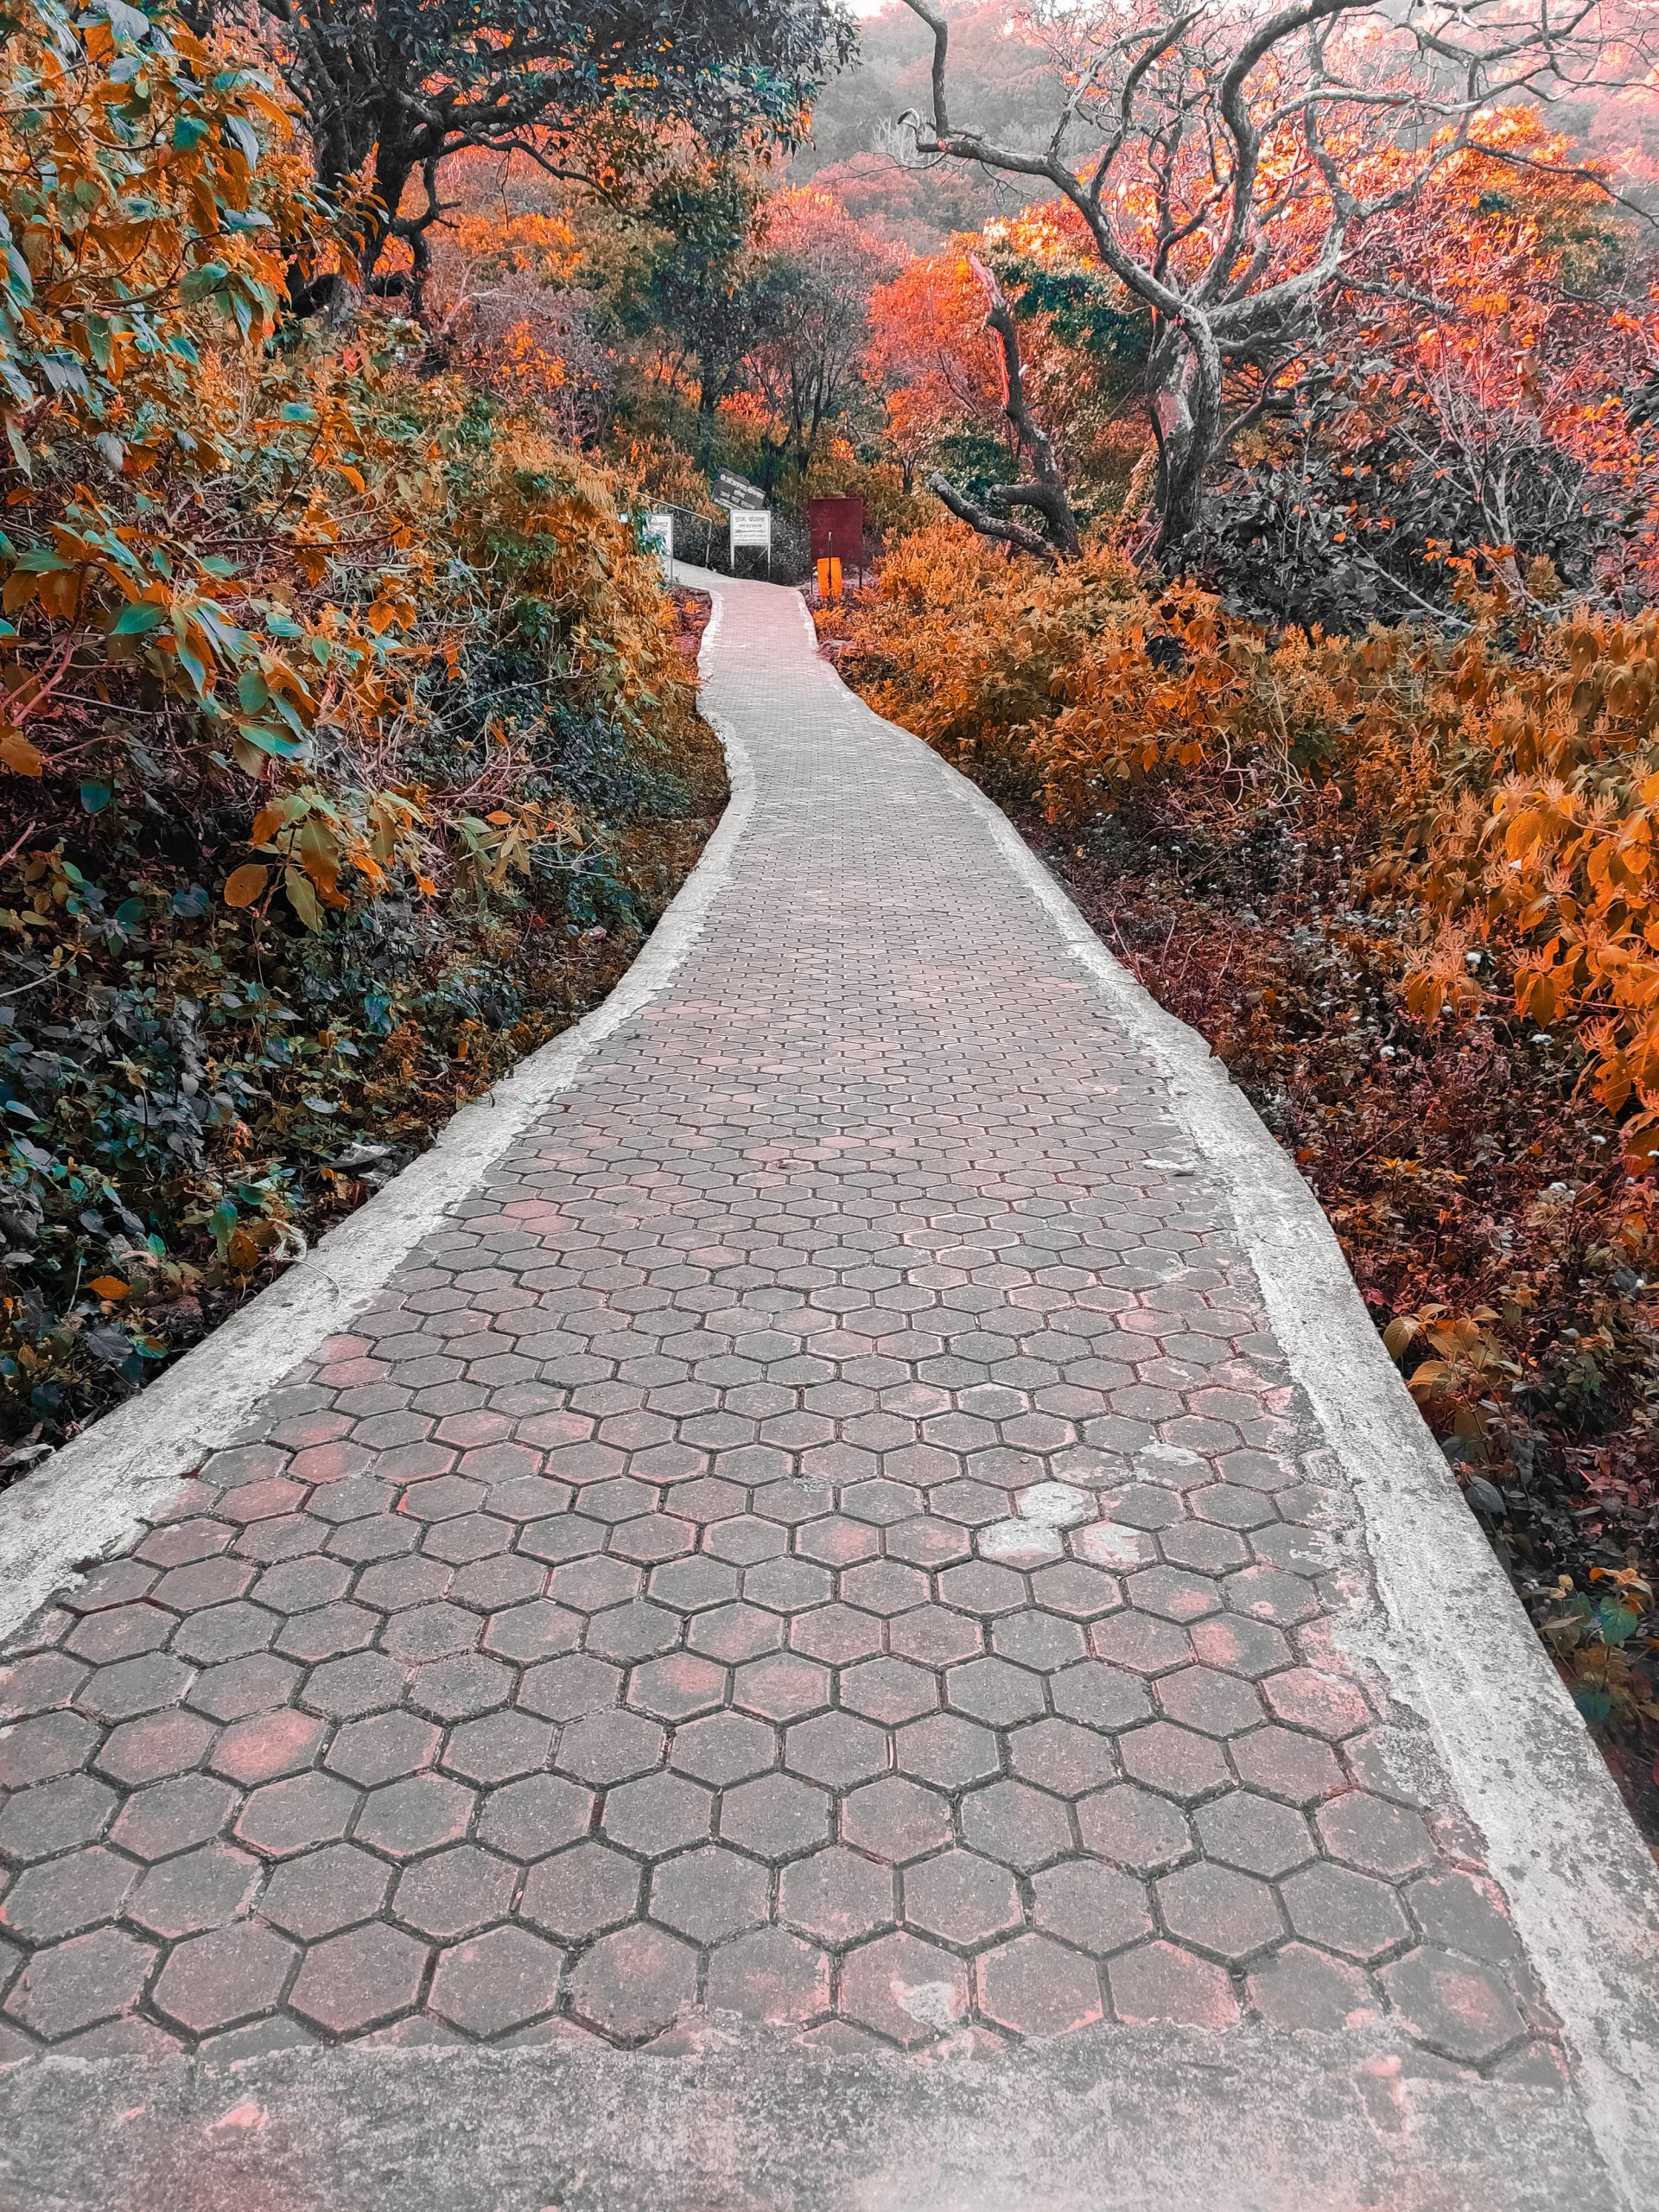 A walkway in a park